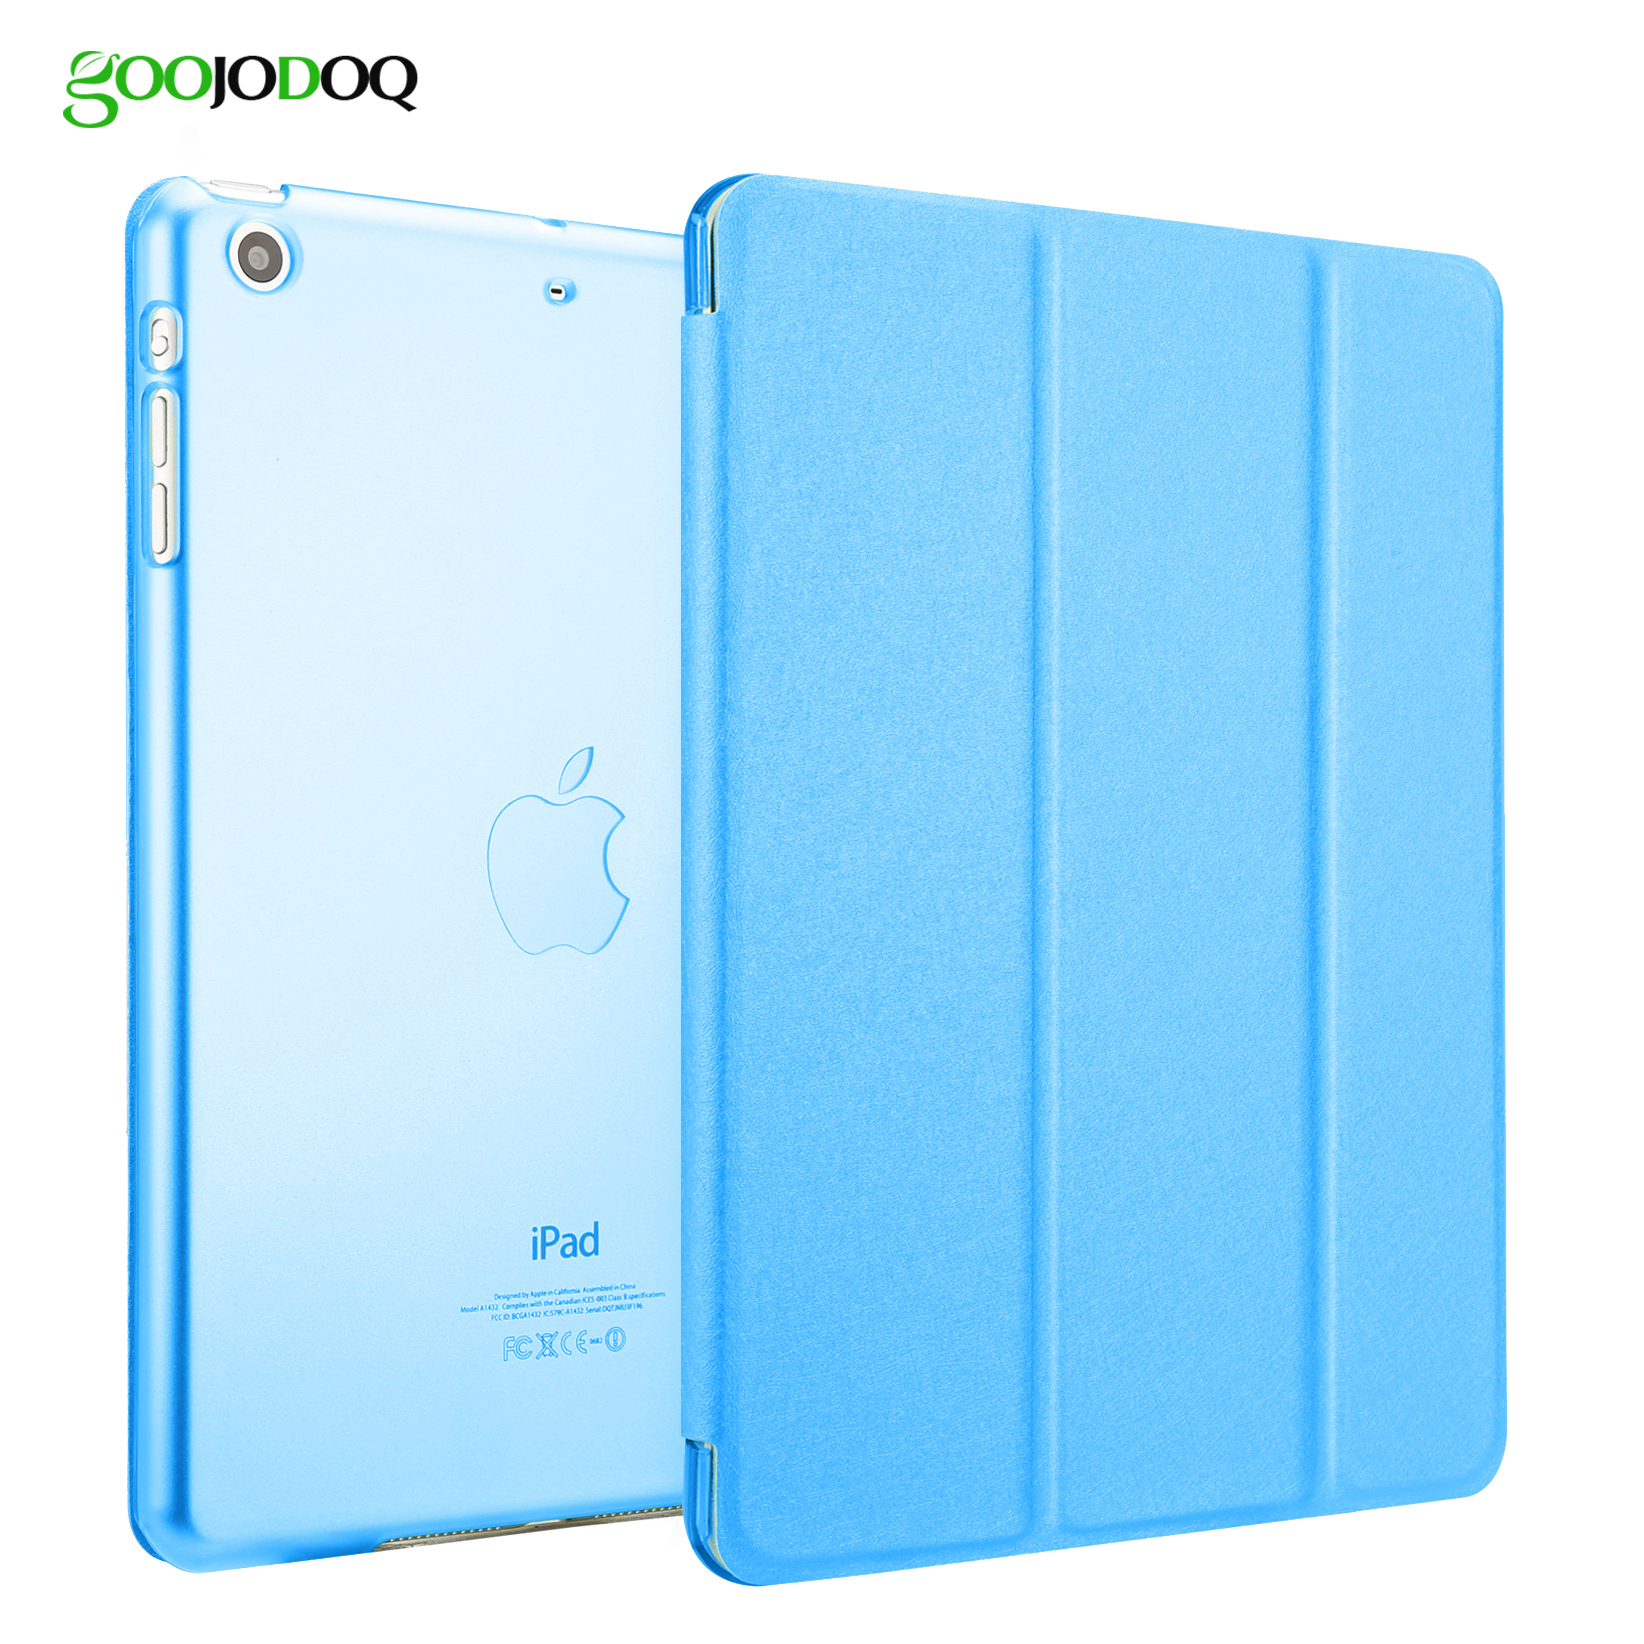 Slim Smart Case for iPad Mini 1 2 3 4 PU Leather Smart Cover Transparent PC Hard Back Case Tri-Fold Stand for Apple iPad mini 4 for ipad mini4 cover high quality soft tpu rubber back case for ipad mini 4 silicone back cover semi transparent case shell skin